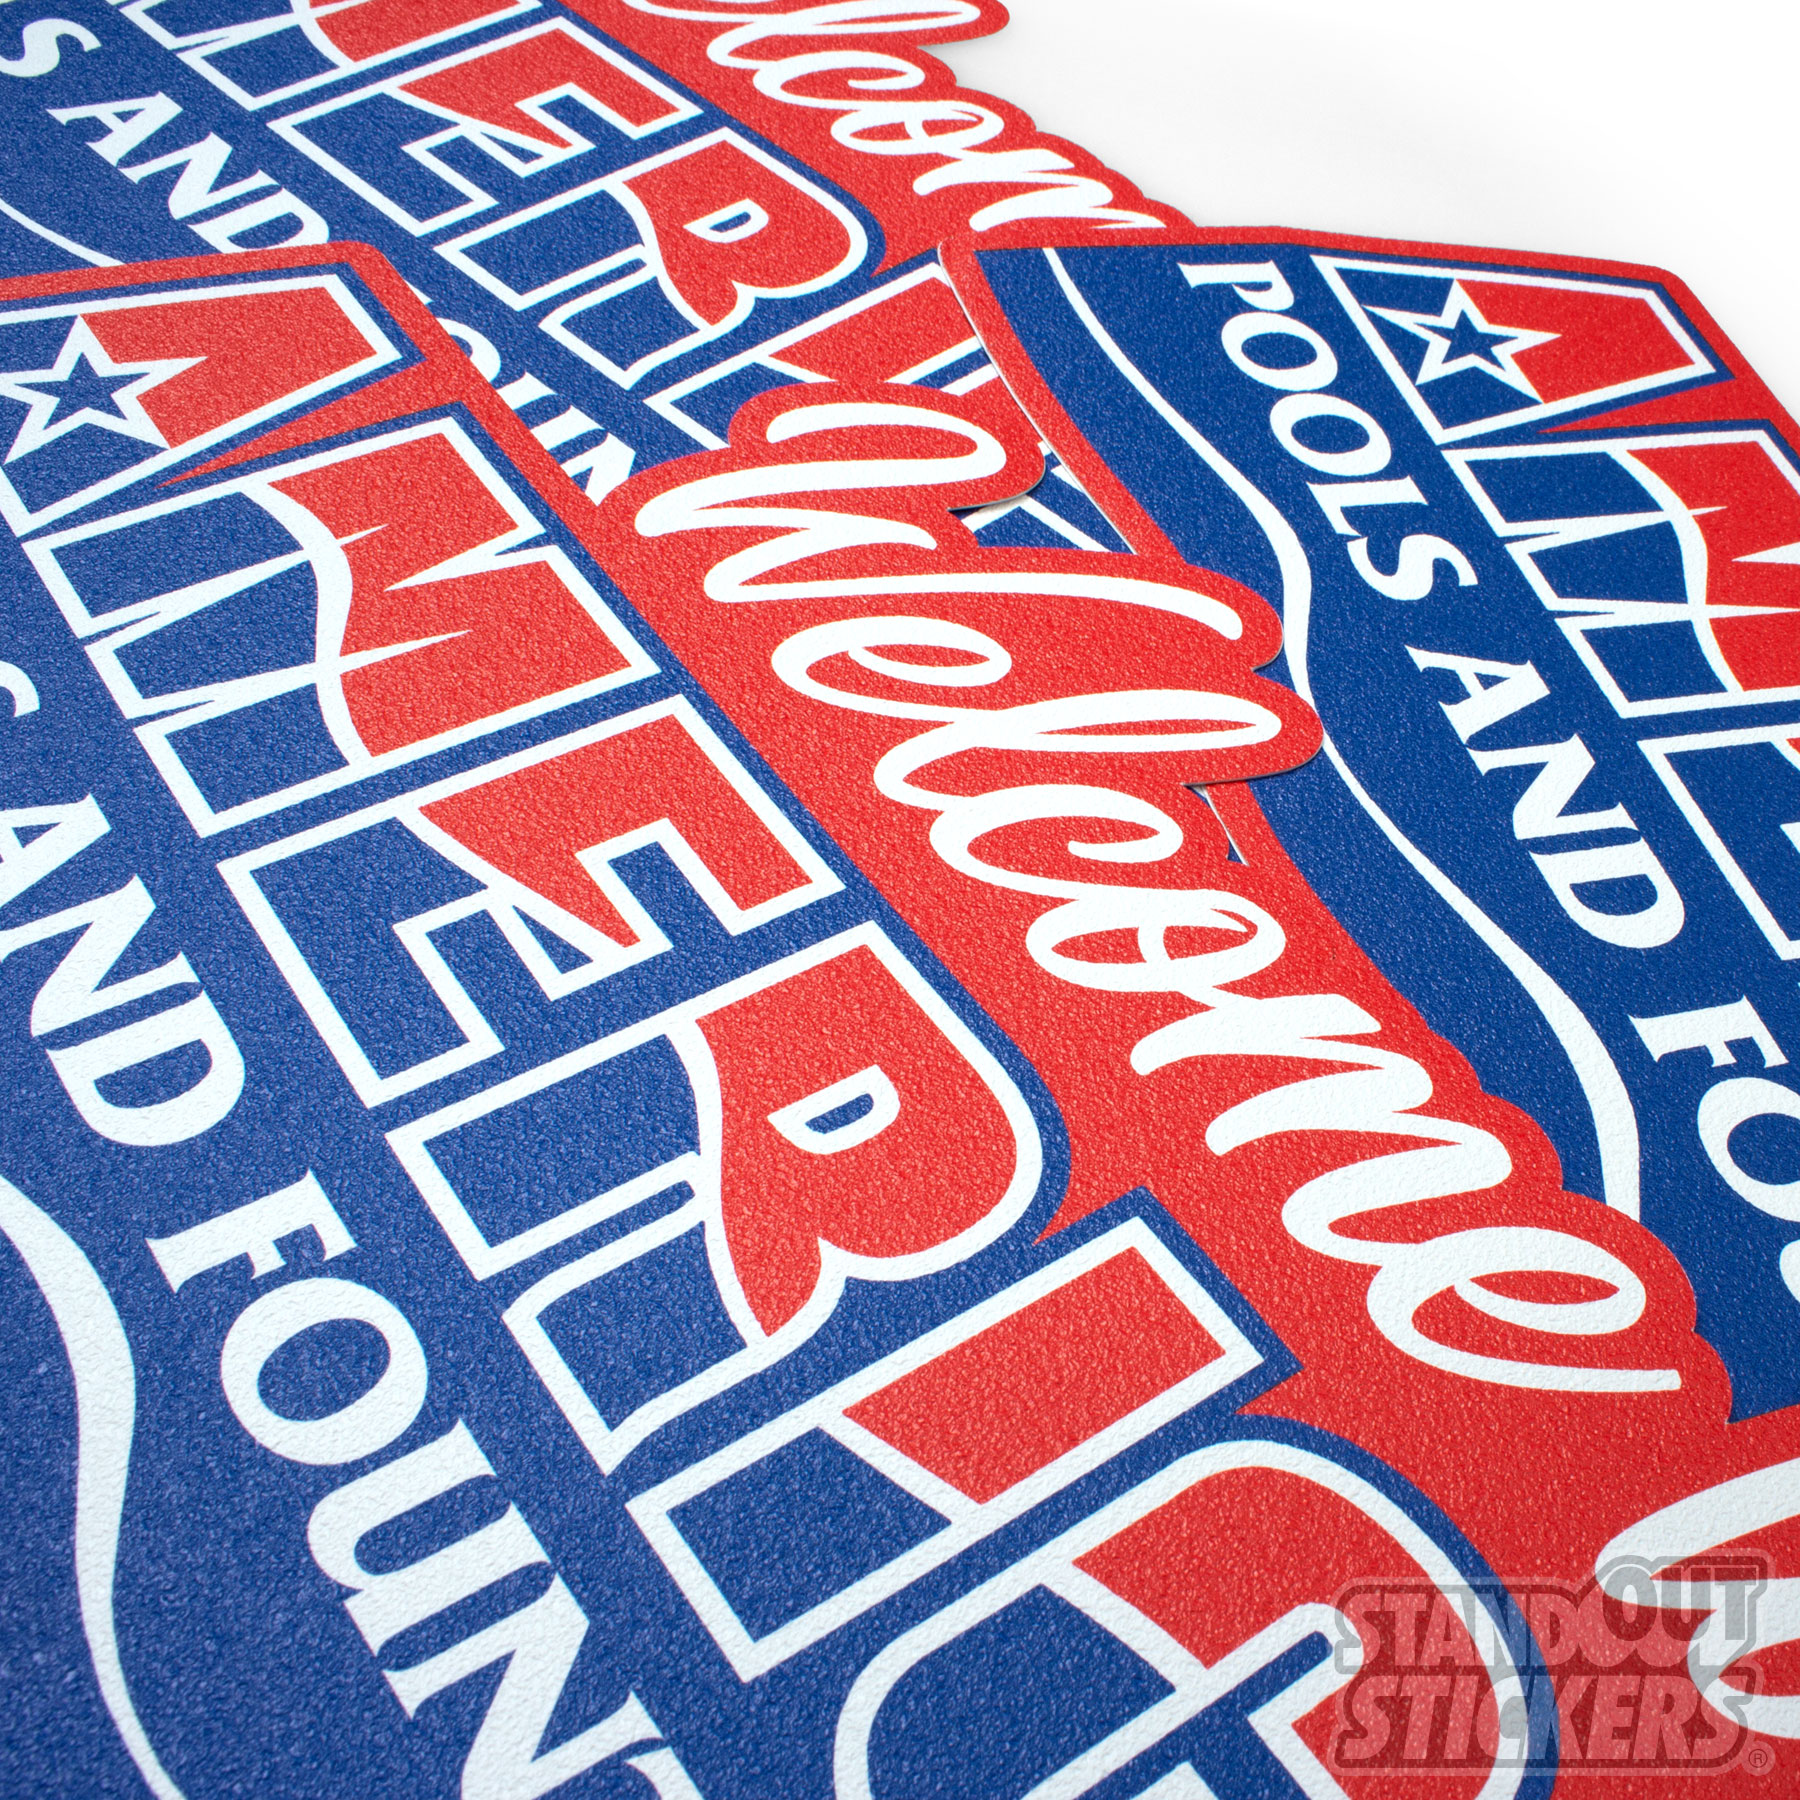 Welcome To American Pool and Fountain Die Cut Floor Decals